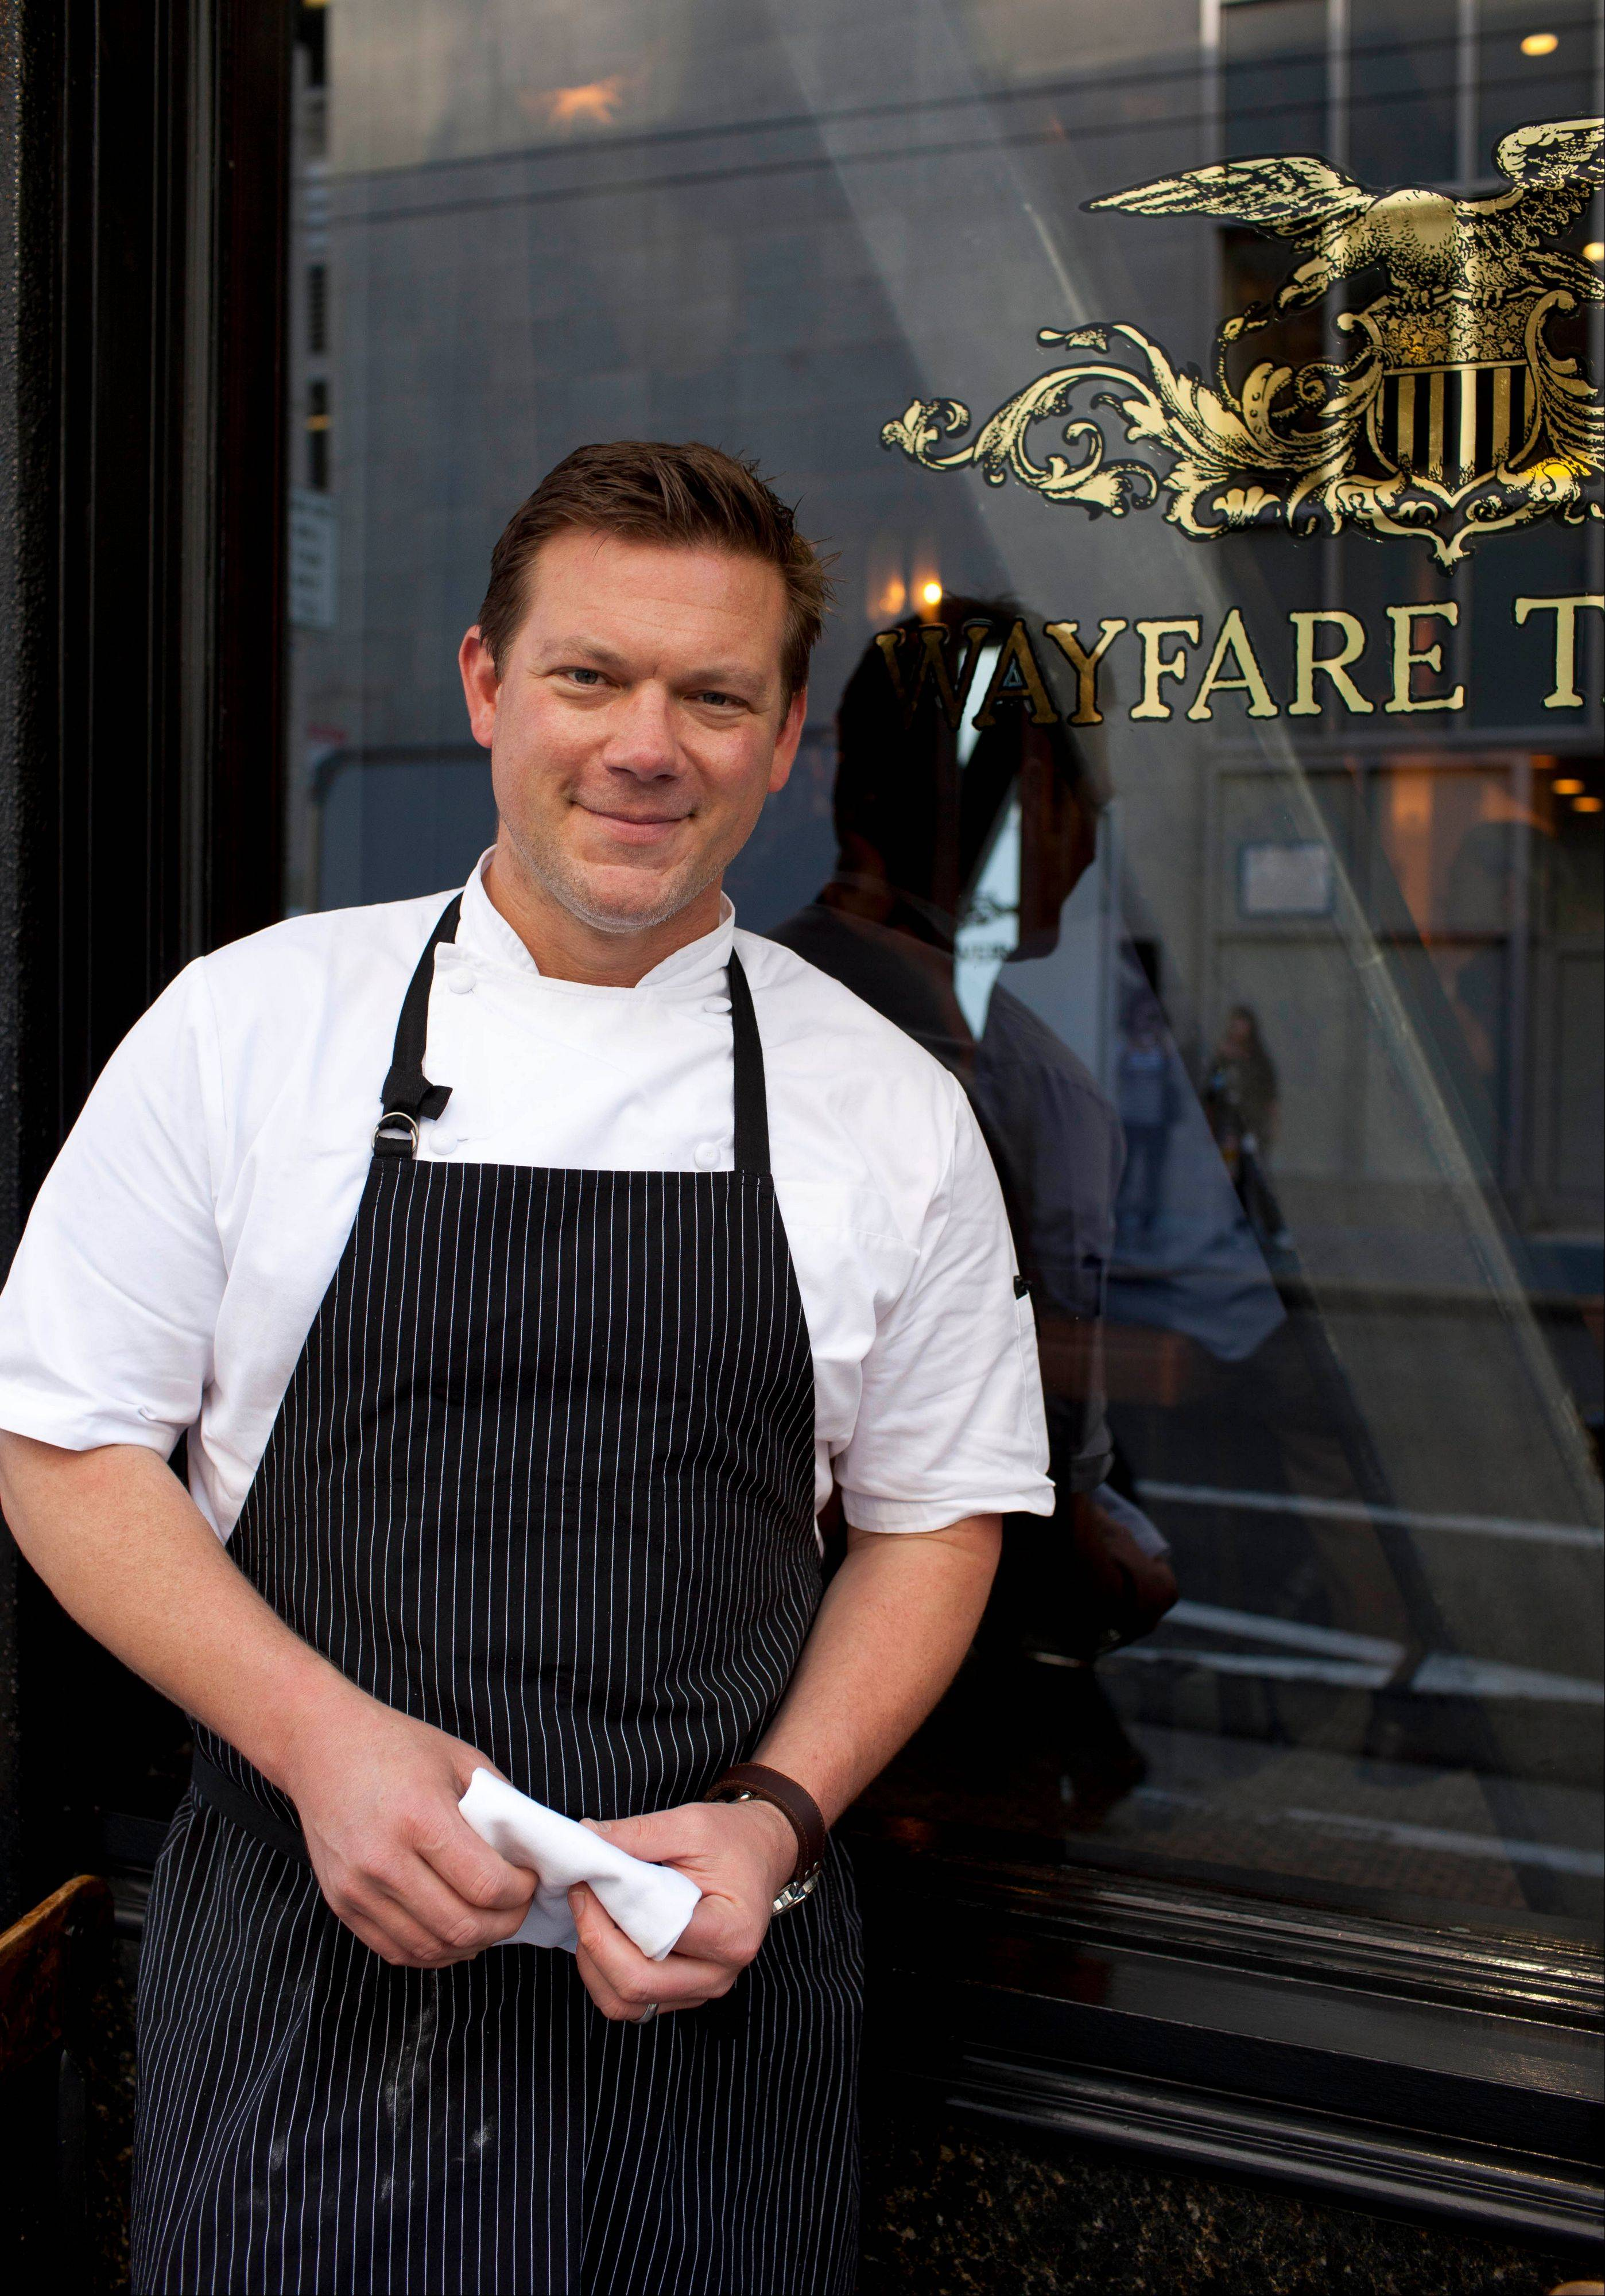 Chef Tyler Florence poses outside his Wayfare Tavern in San Francisco. In Food Network's early days Florence was synonymous with the network, running the celebrity chef gauntlet with cookbooks, product lines and appearances.